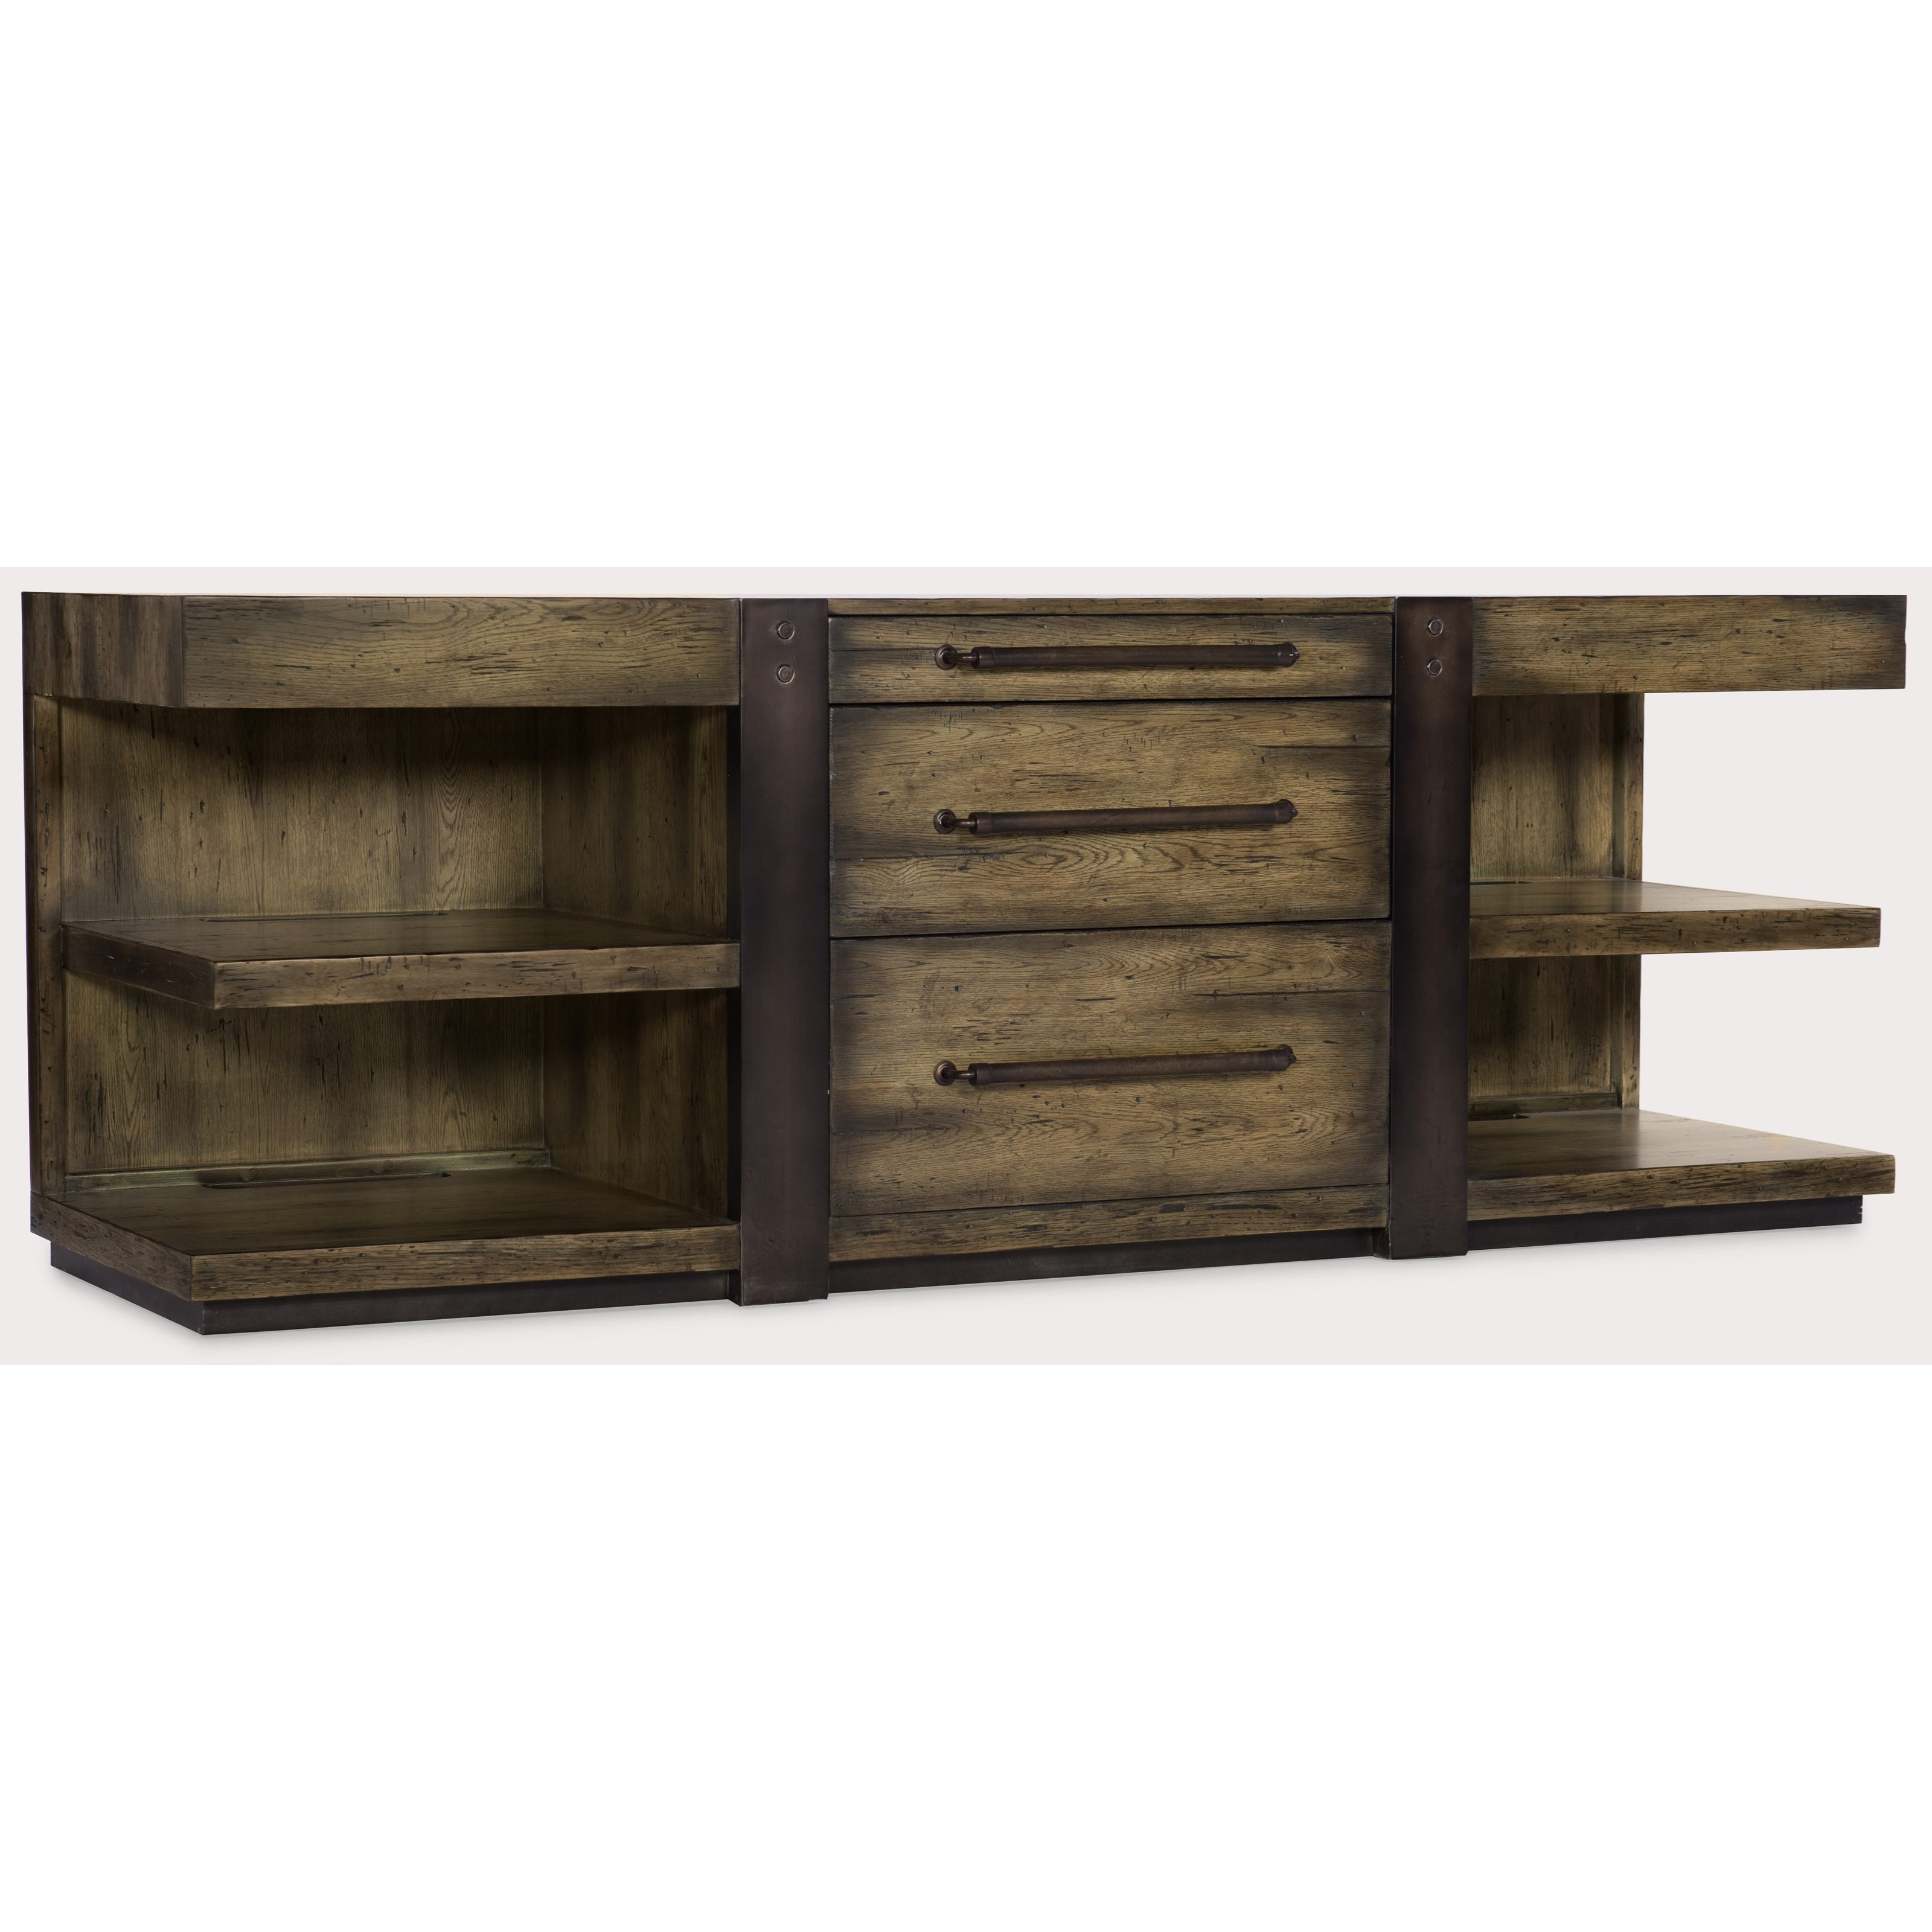 American Life-Crafted Leg Desk Credenza by Hooker Furniture at Fisher Home Furnishings